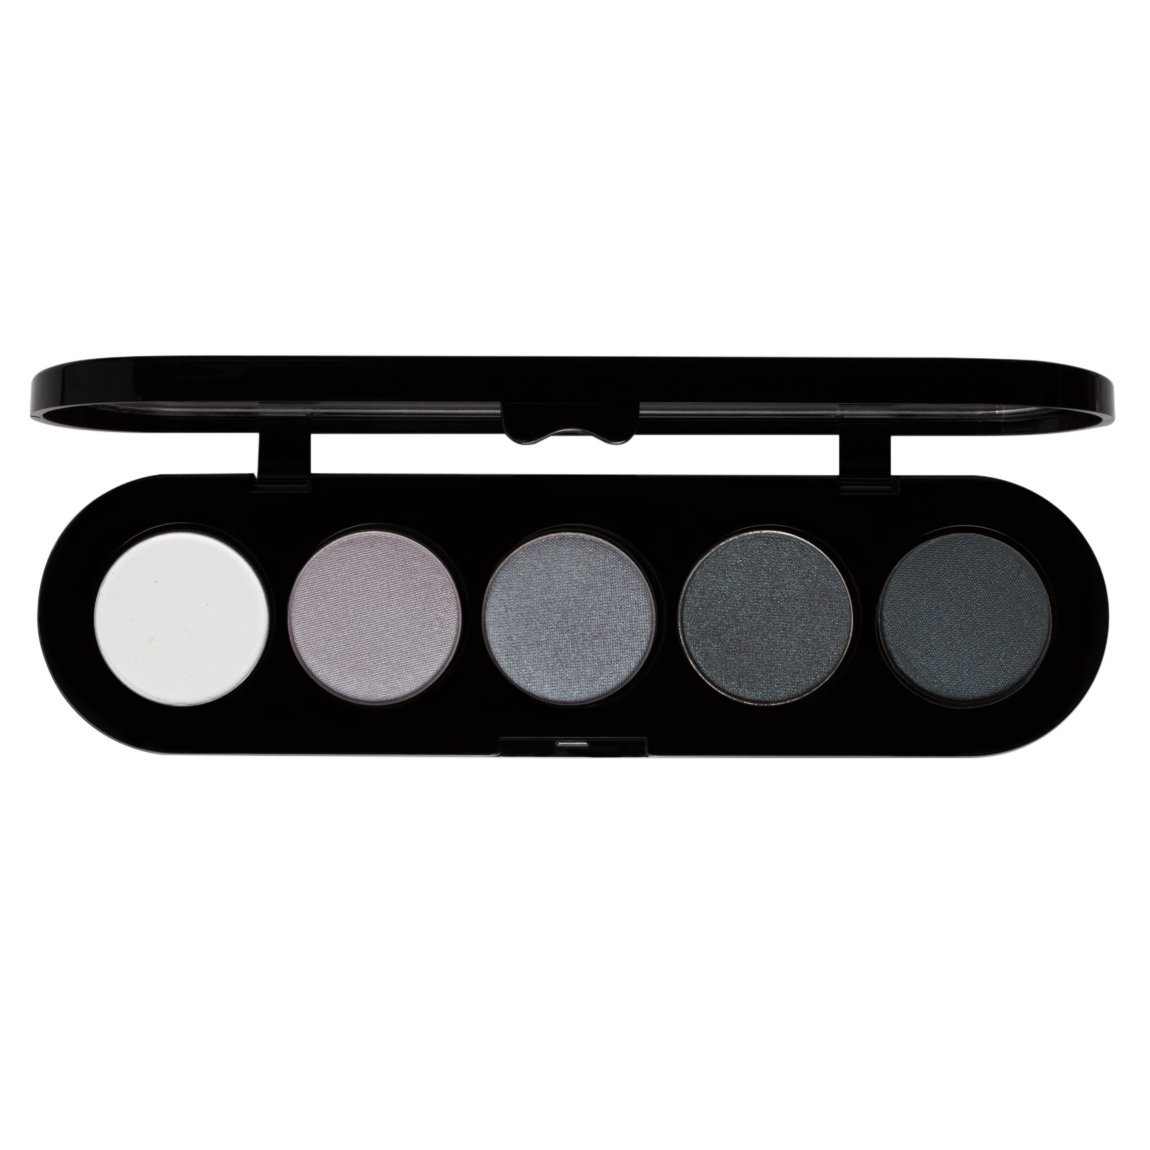 Make-Up Atelier Palette Eye Shadows T12 Black and White Tones alternative view 1 - product swatch.